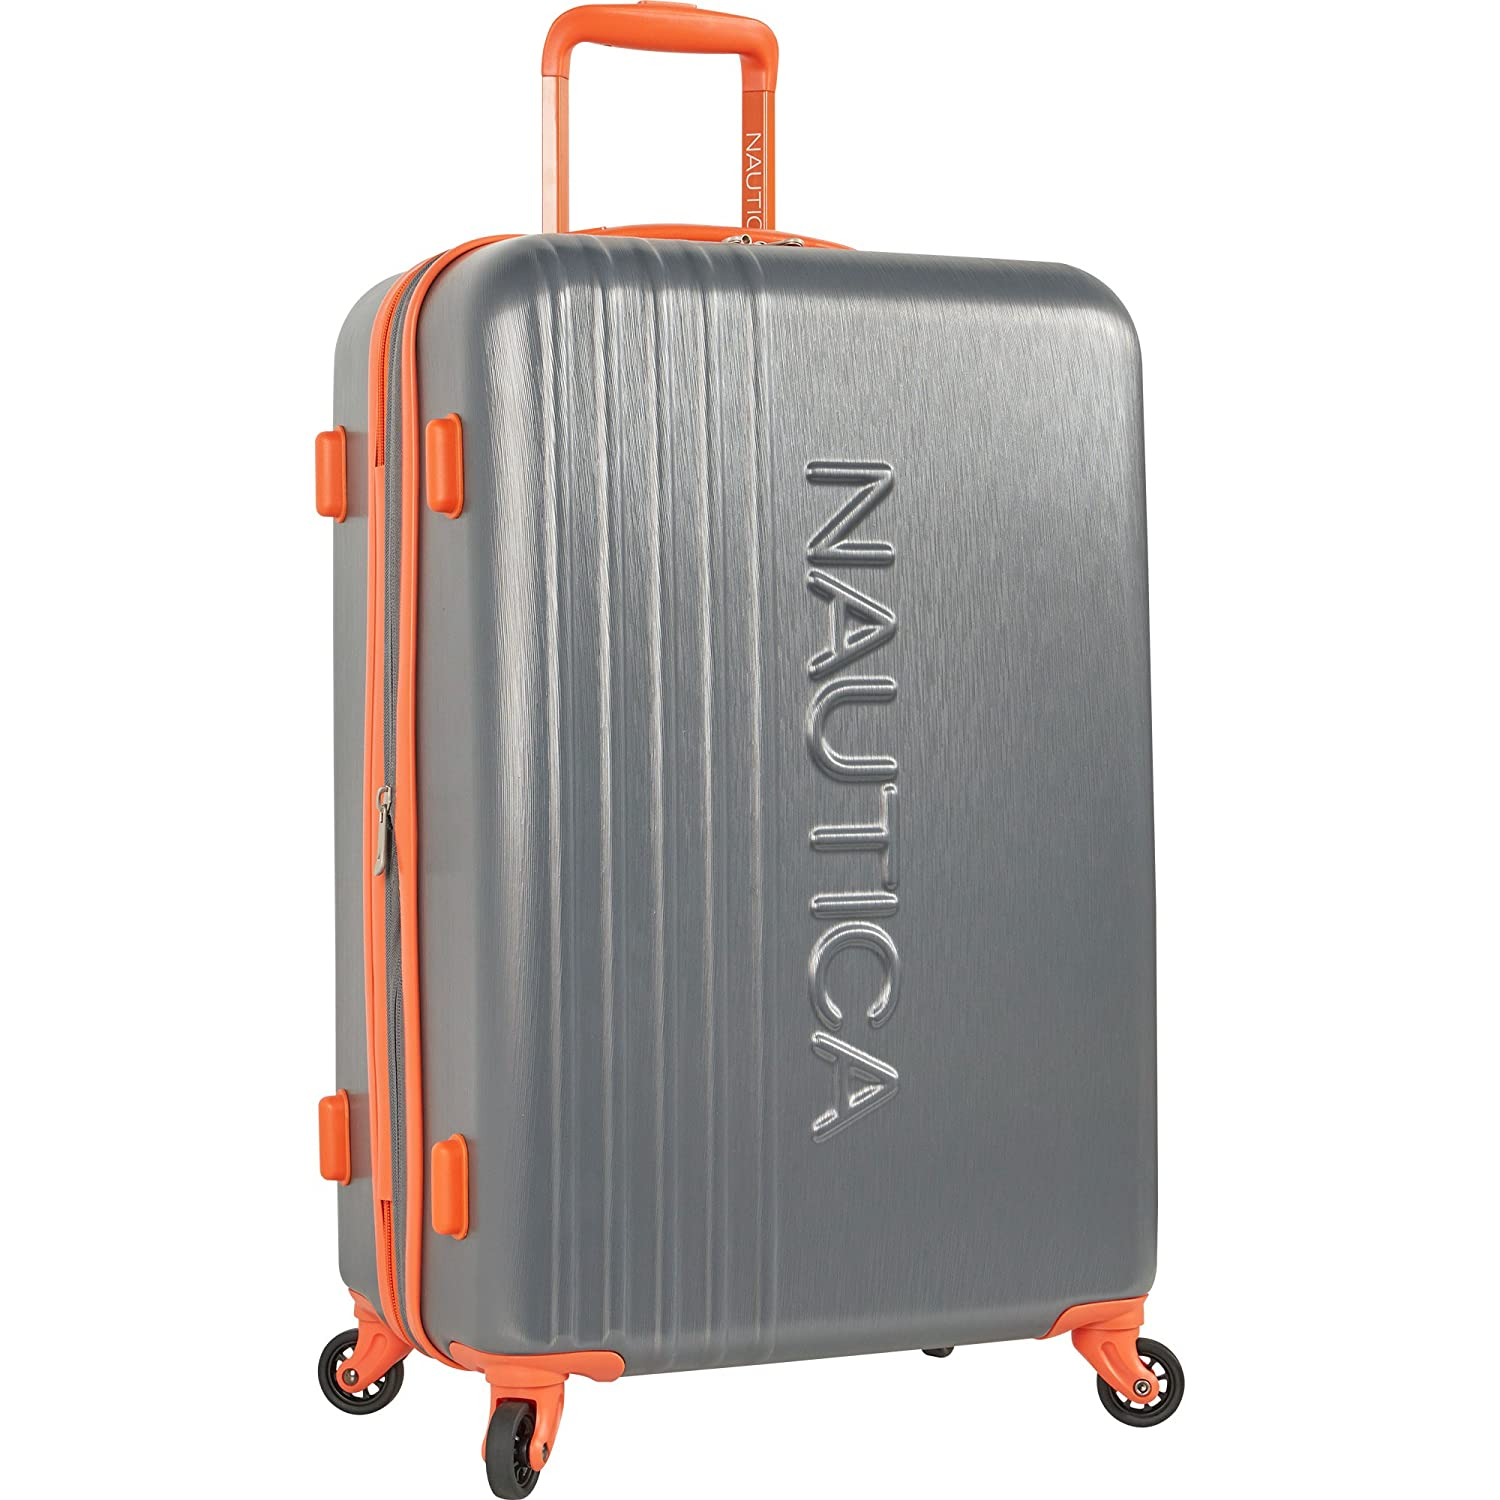 54b9b2ebb Amazon.com | Nautica Hardside Carry On Luggage - 20 Inch Spinner Wheels  Suitcase Lightweight Rolling Travel Bag for Under Seat, Grey | Suitcases